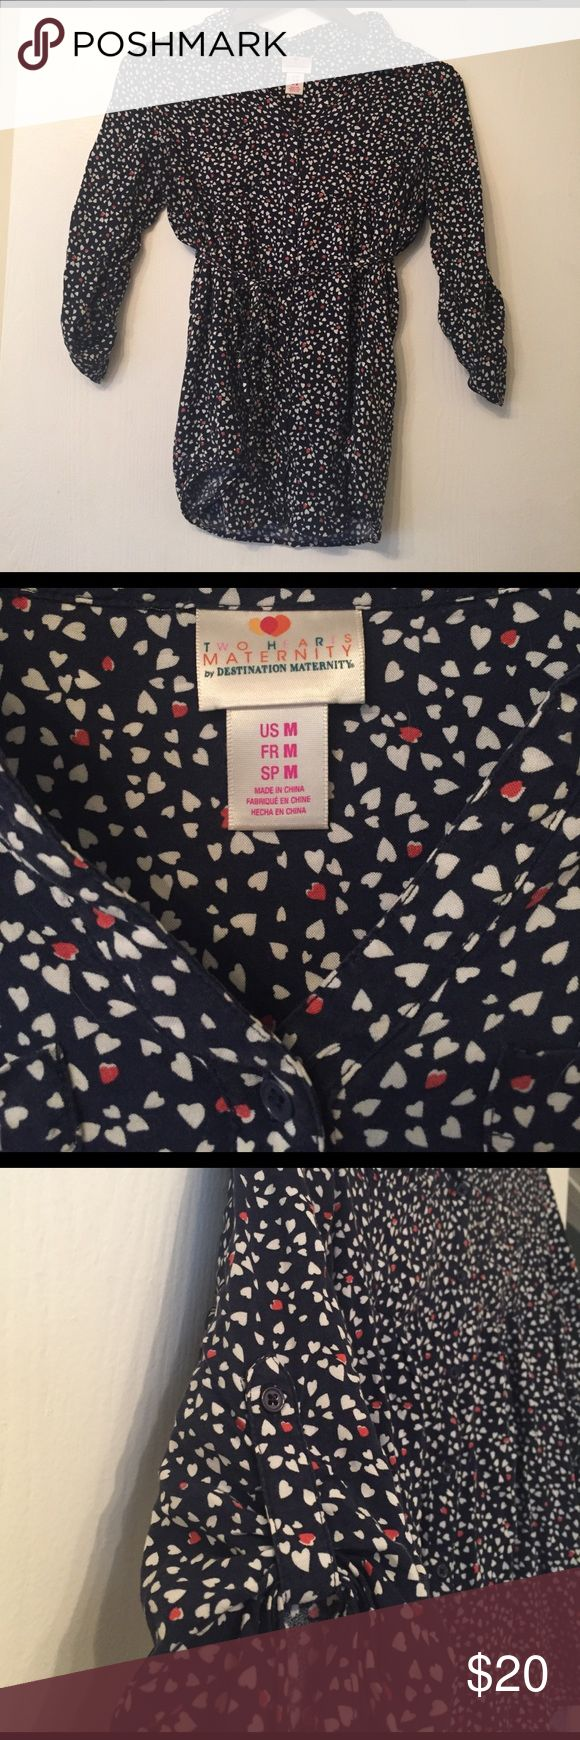 Women's Maternity Blue Button Up Shirt w Hearts Two Hearts Maternity by Destination Maternity  Size Medium  Button up shirt and medium length sleeve (with button flourish as well).  Two small breast pockets  Fitted hem line  100% Rayon Made in China Includes spare button and fabric belt (pictured) Destination Maternity Tops Button Down Shirts